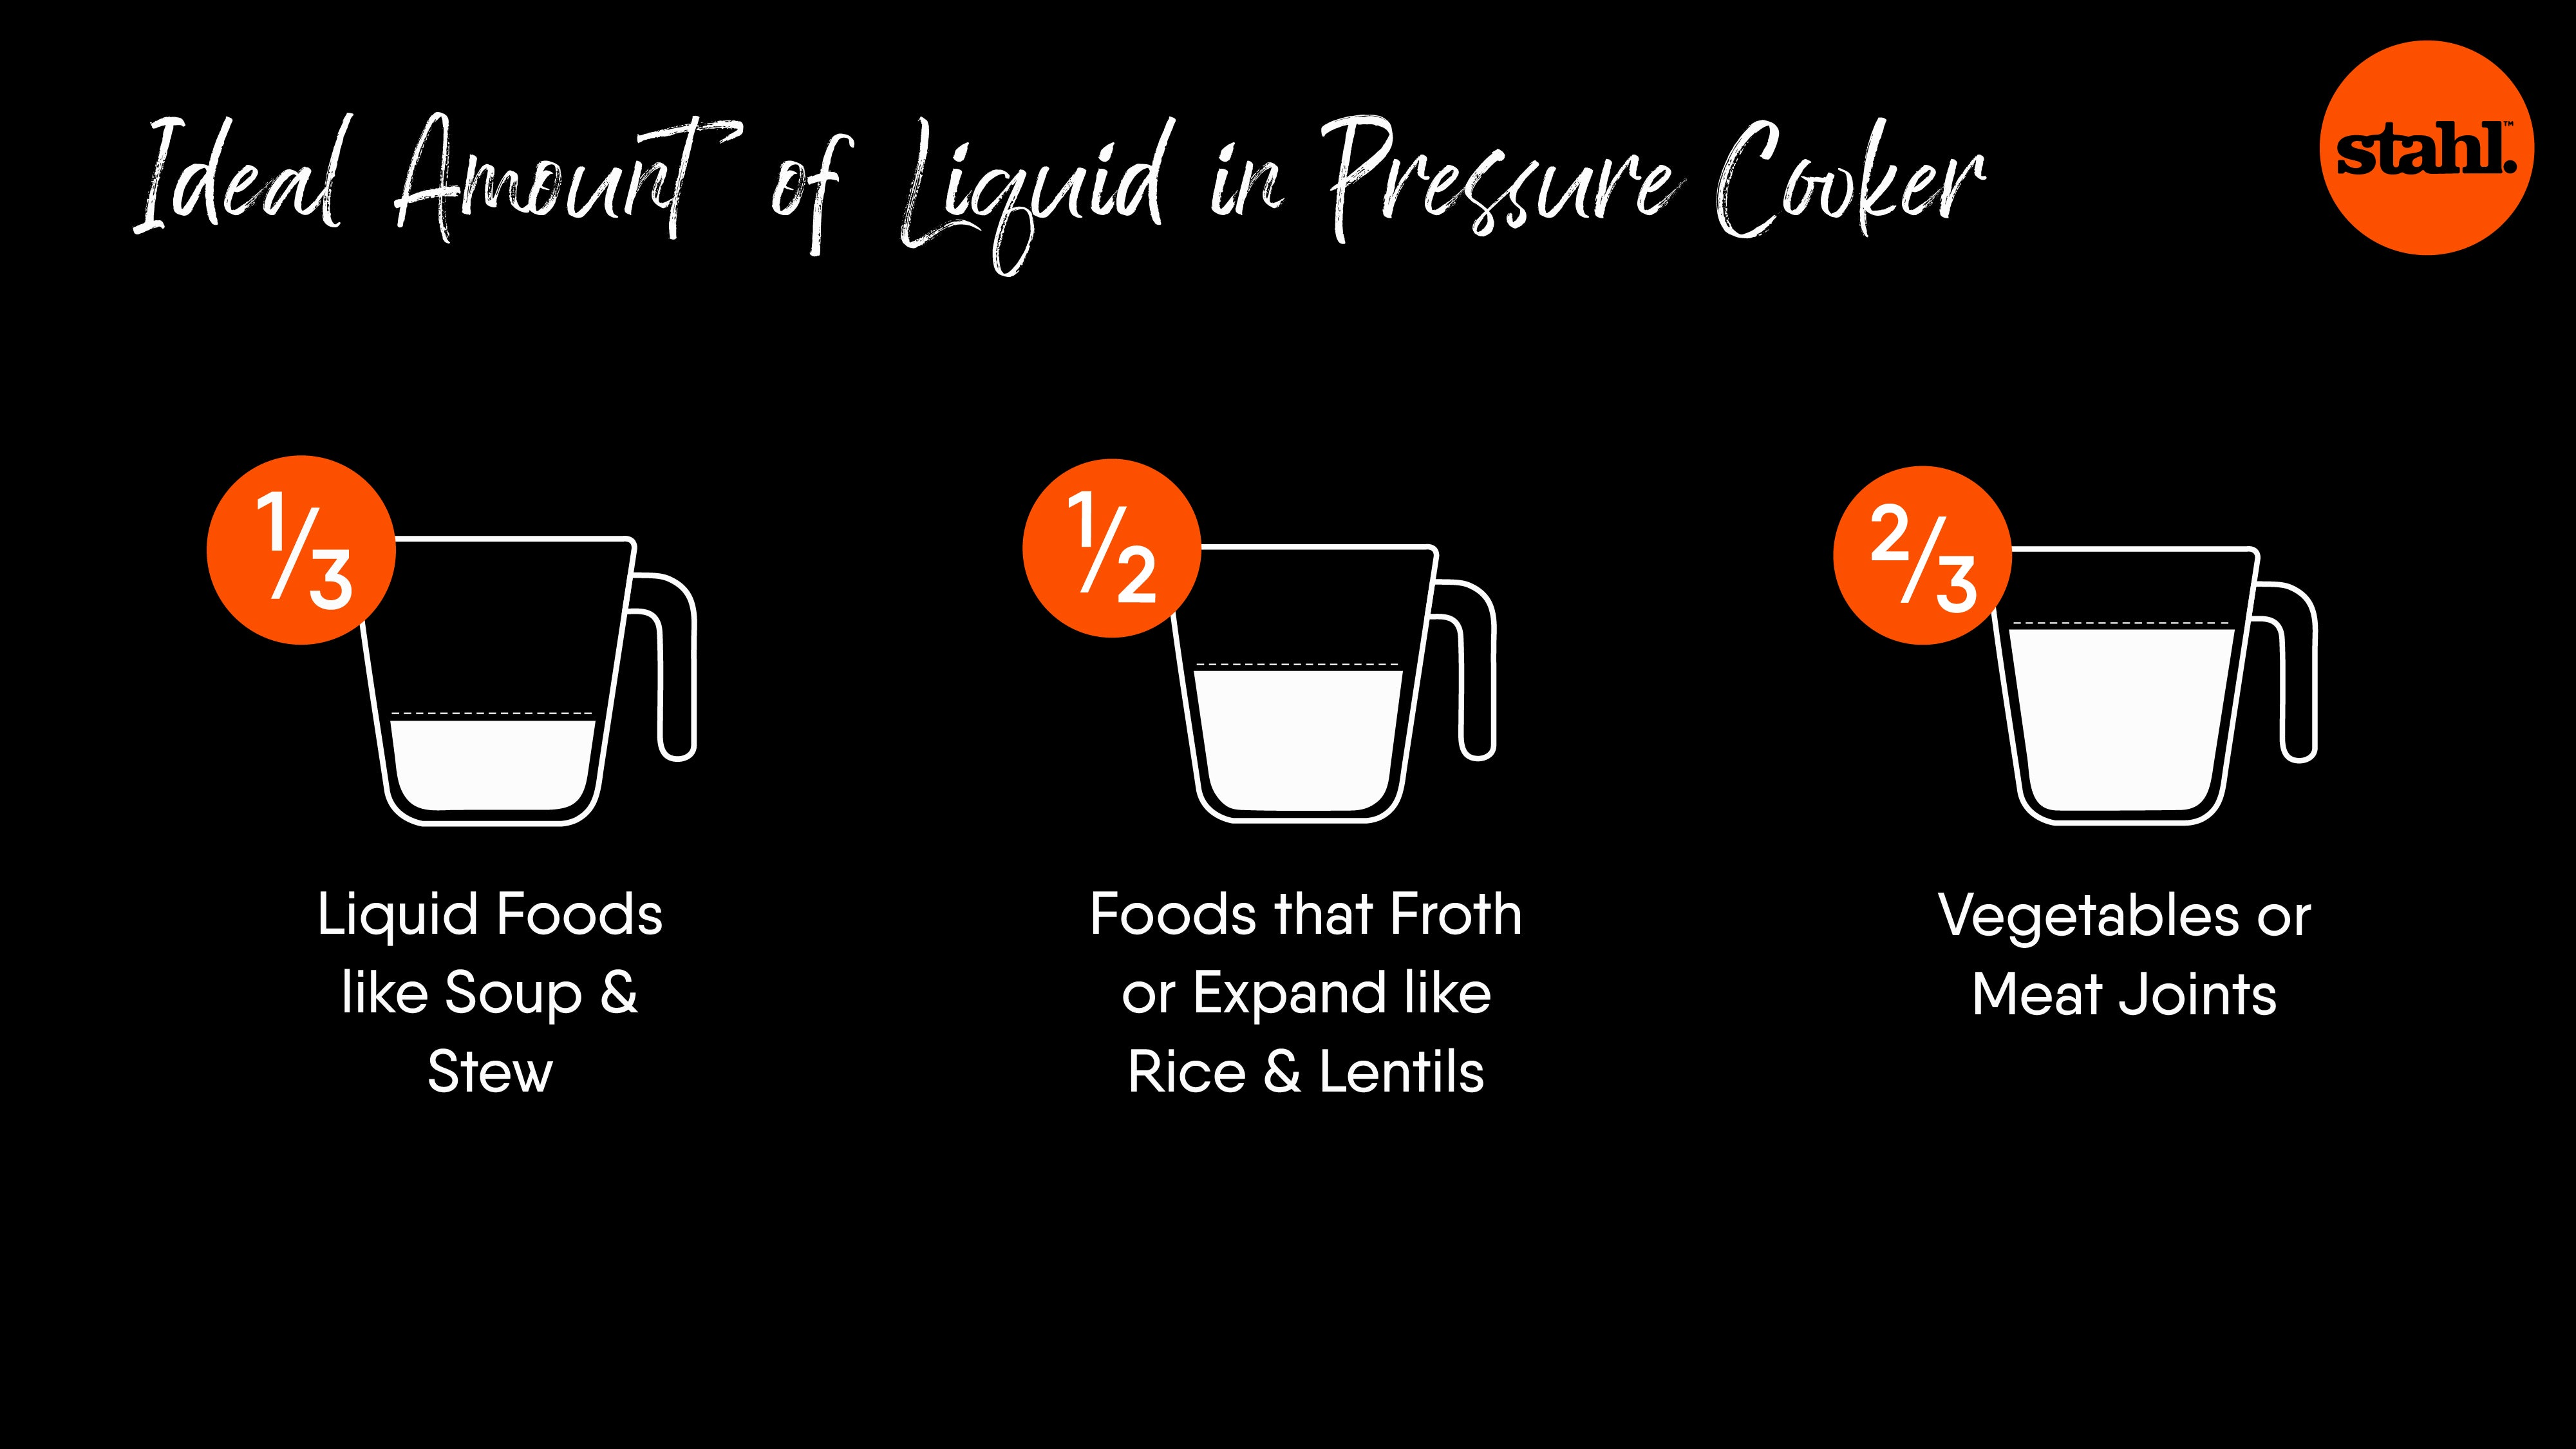 Ideal amount of liquid in a pressure cooker